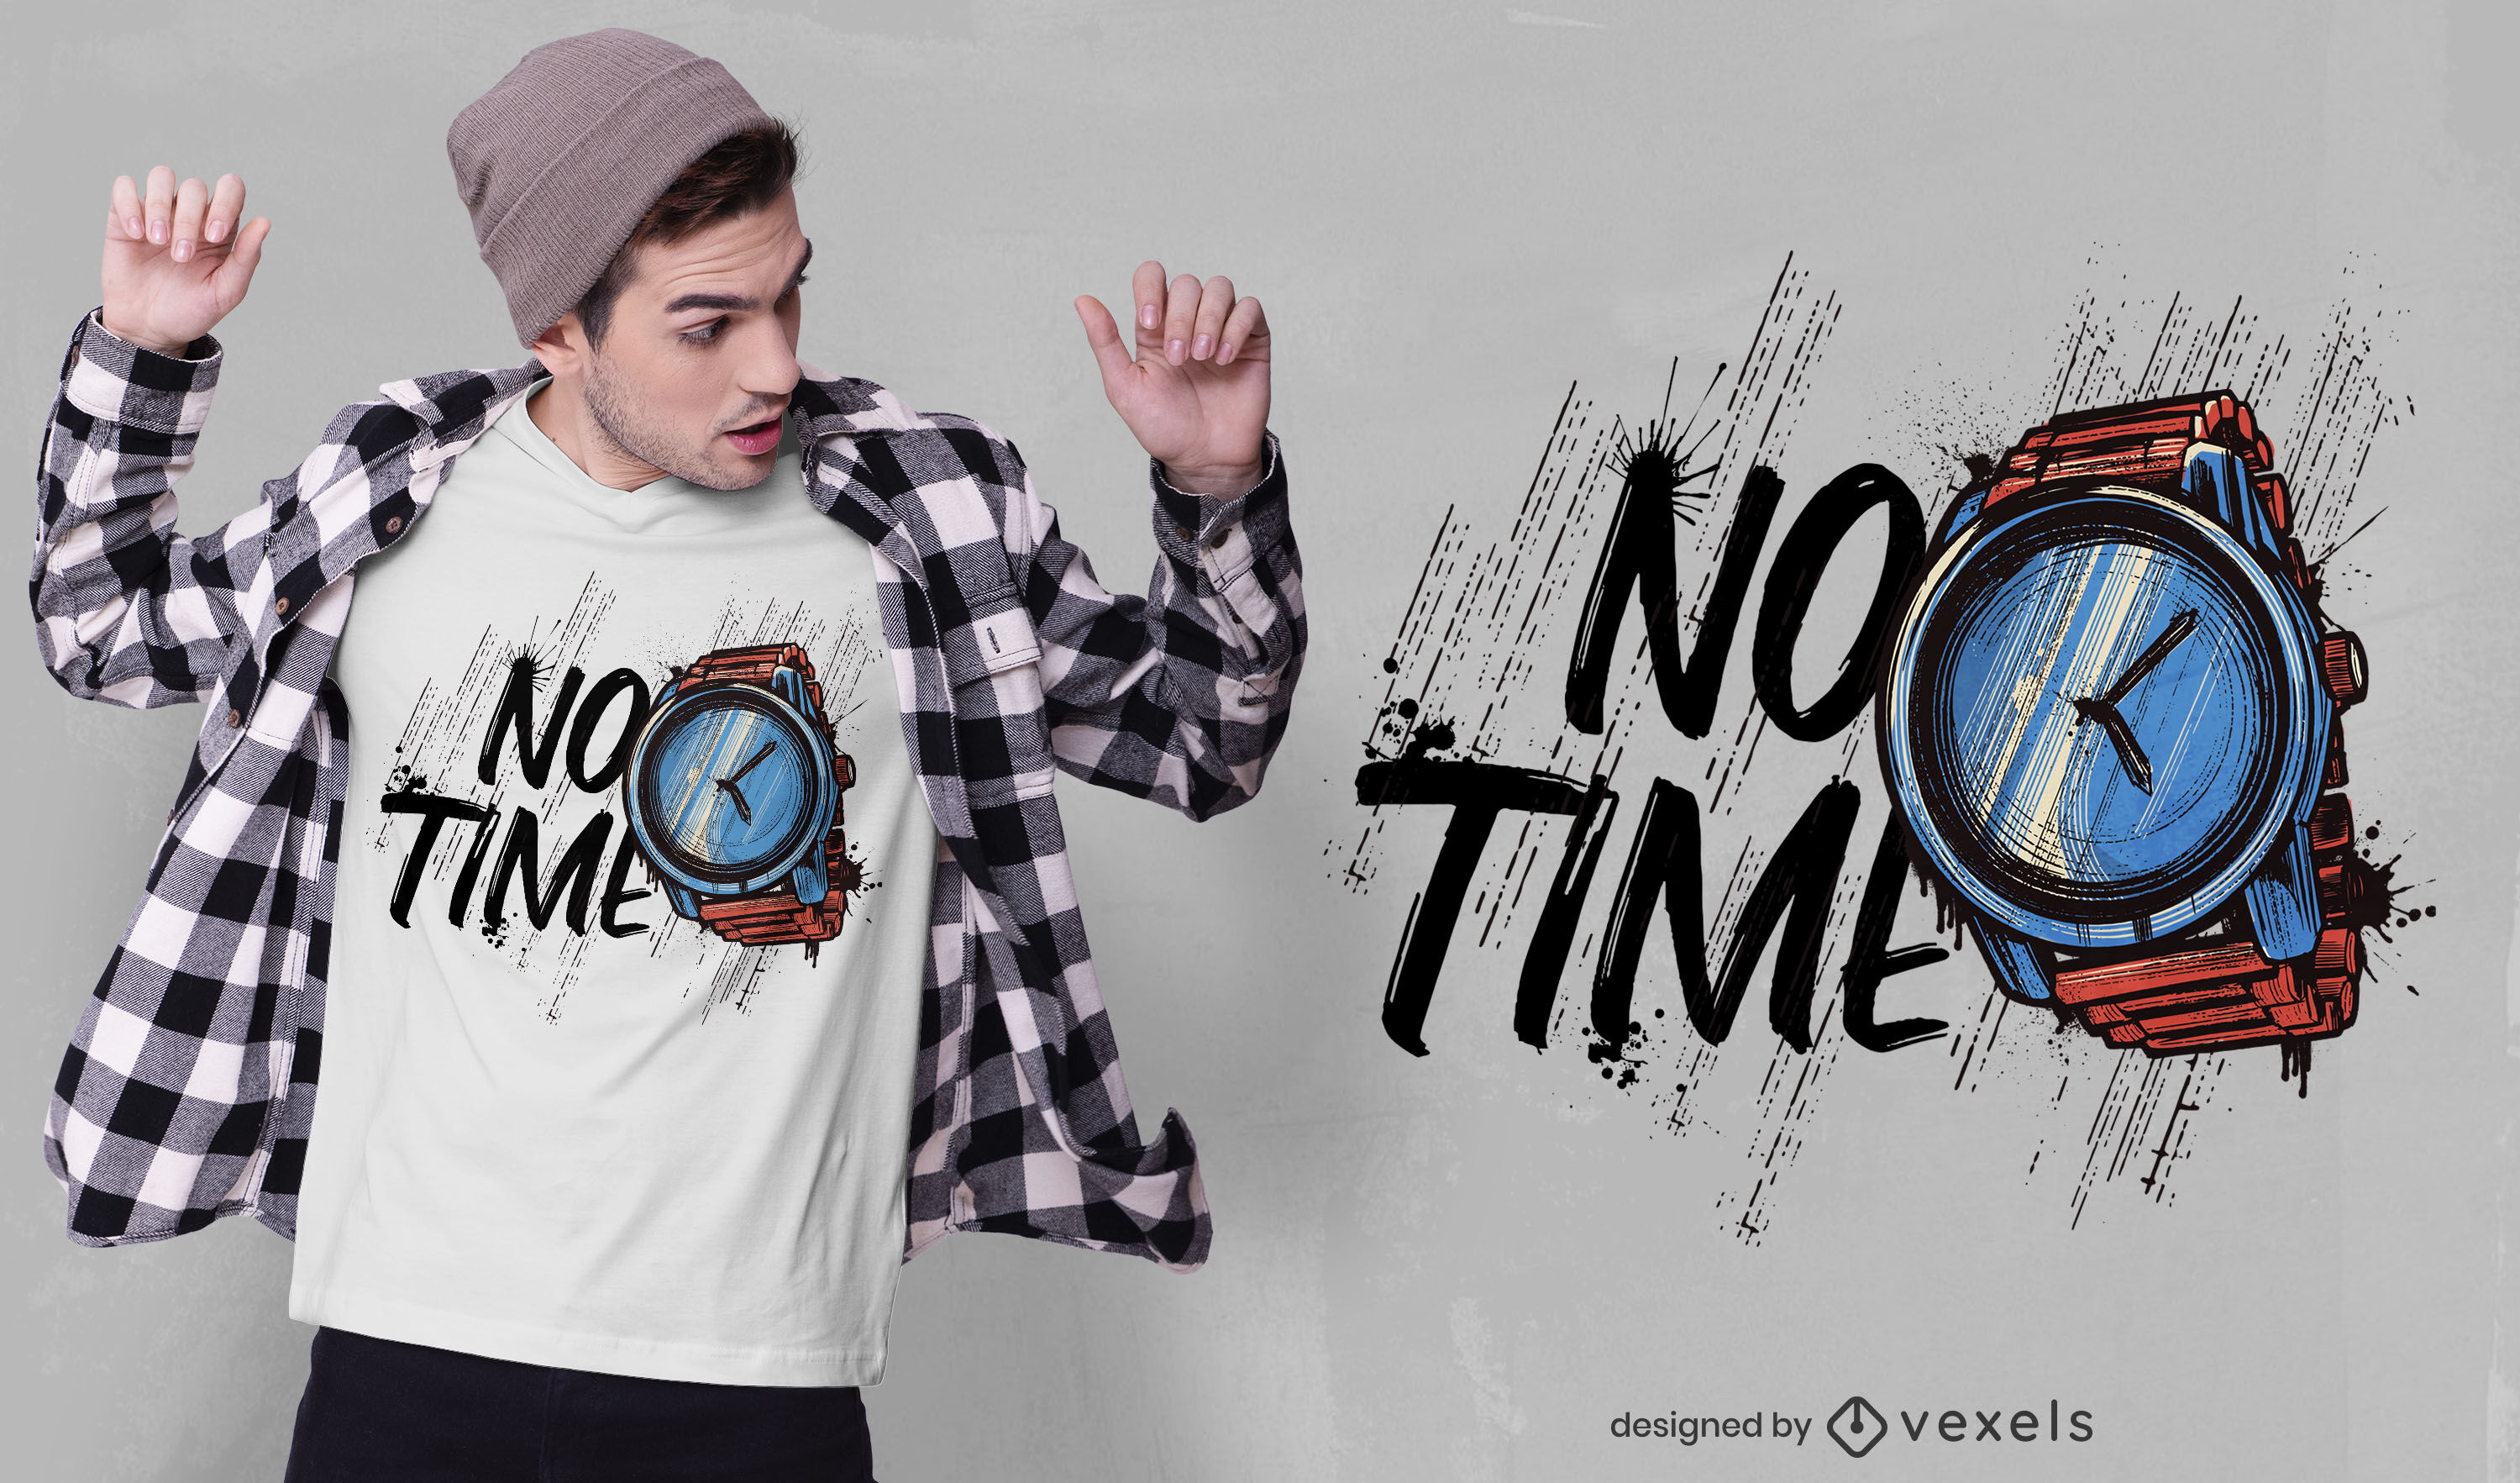 Watch time quote grunge t-shirt design